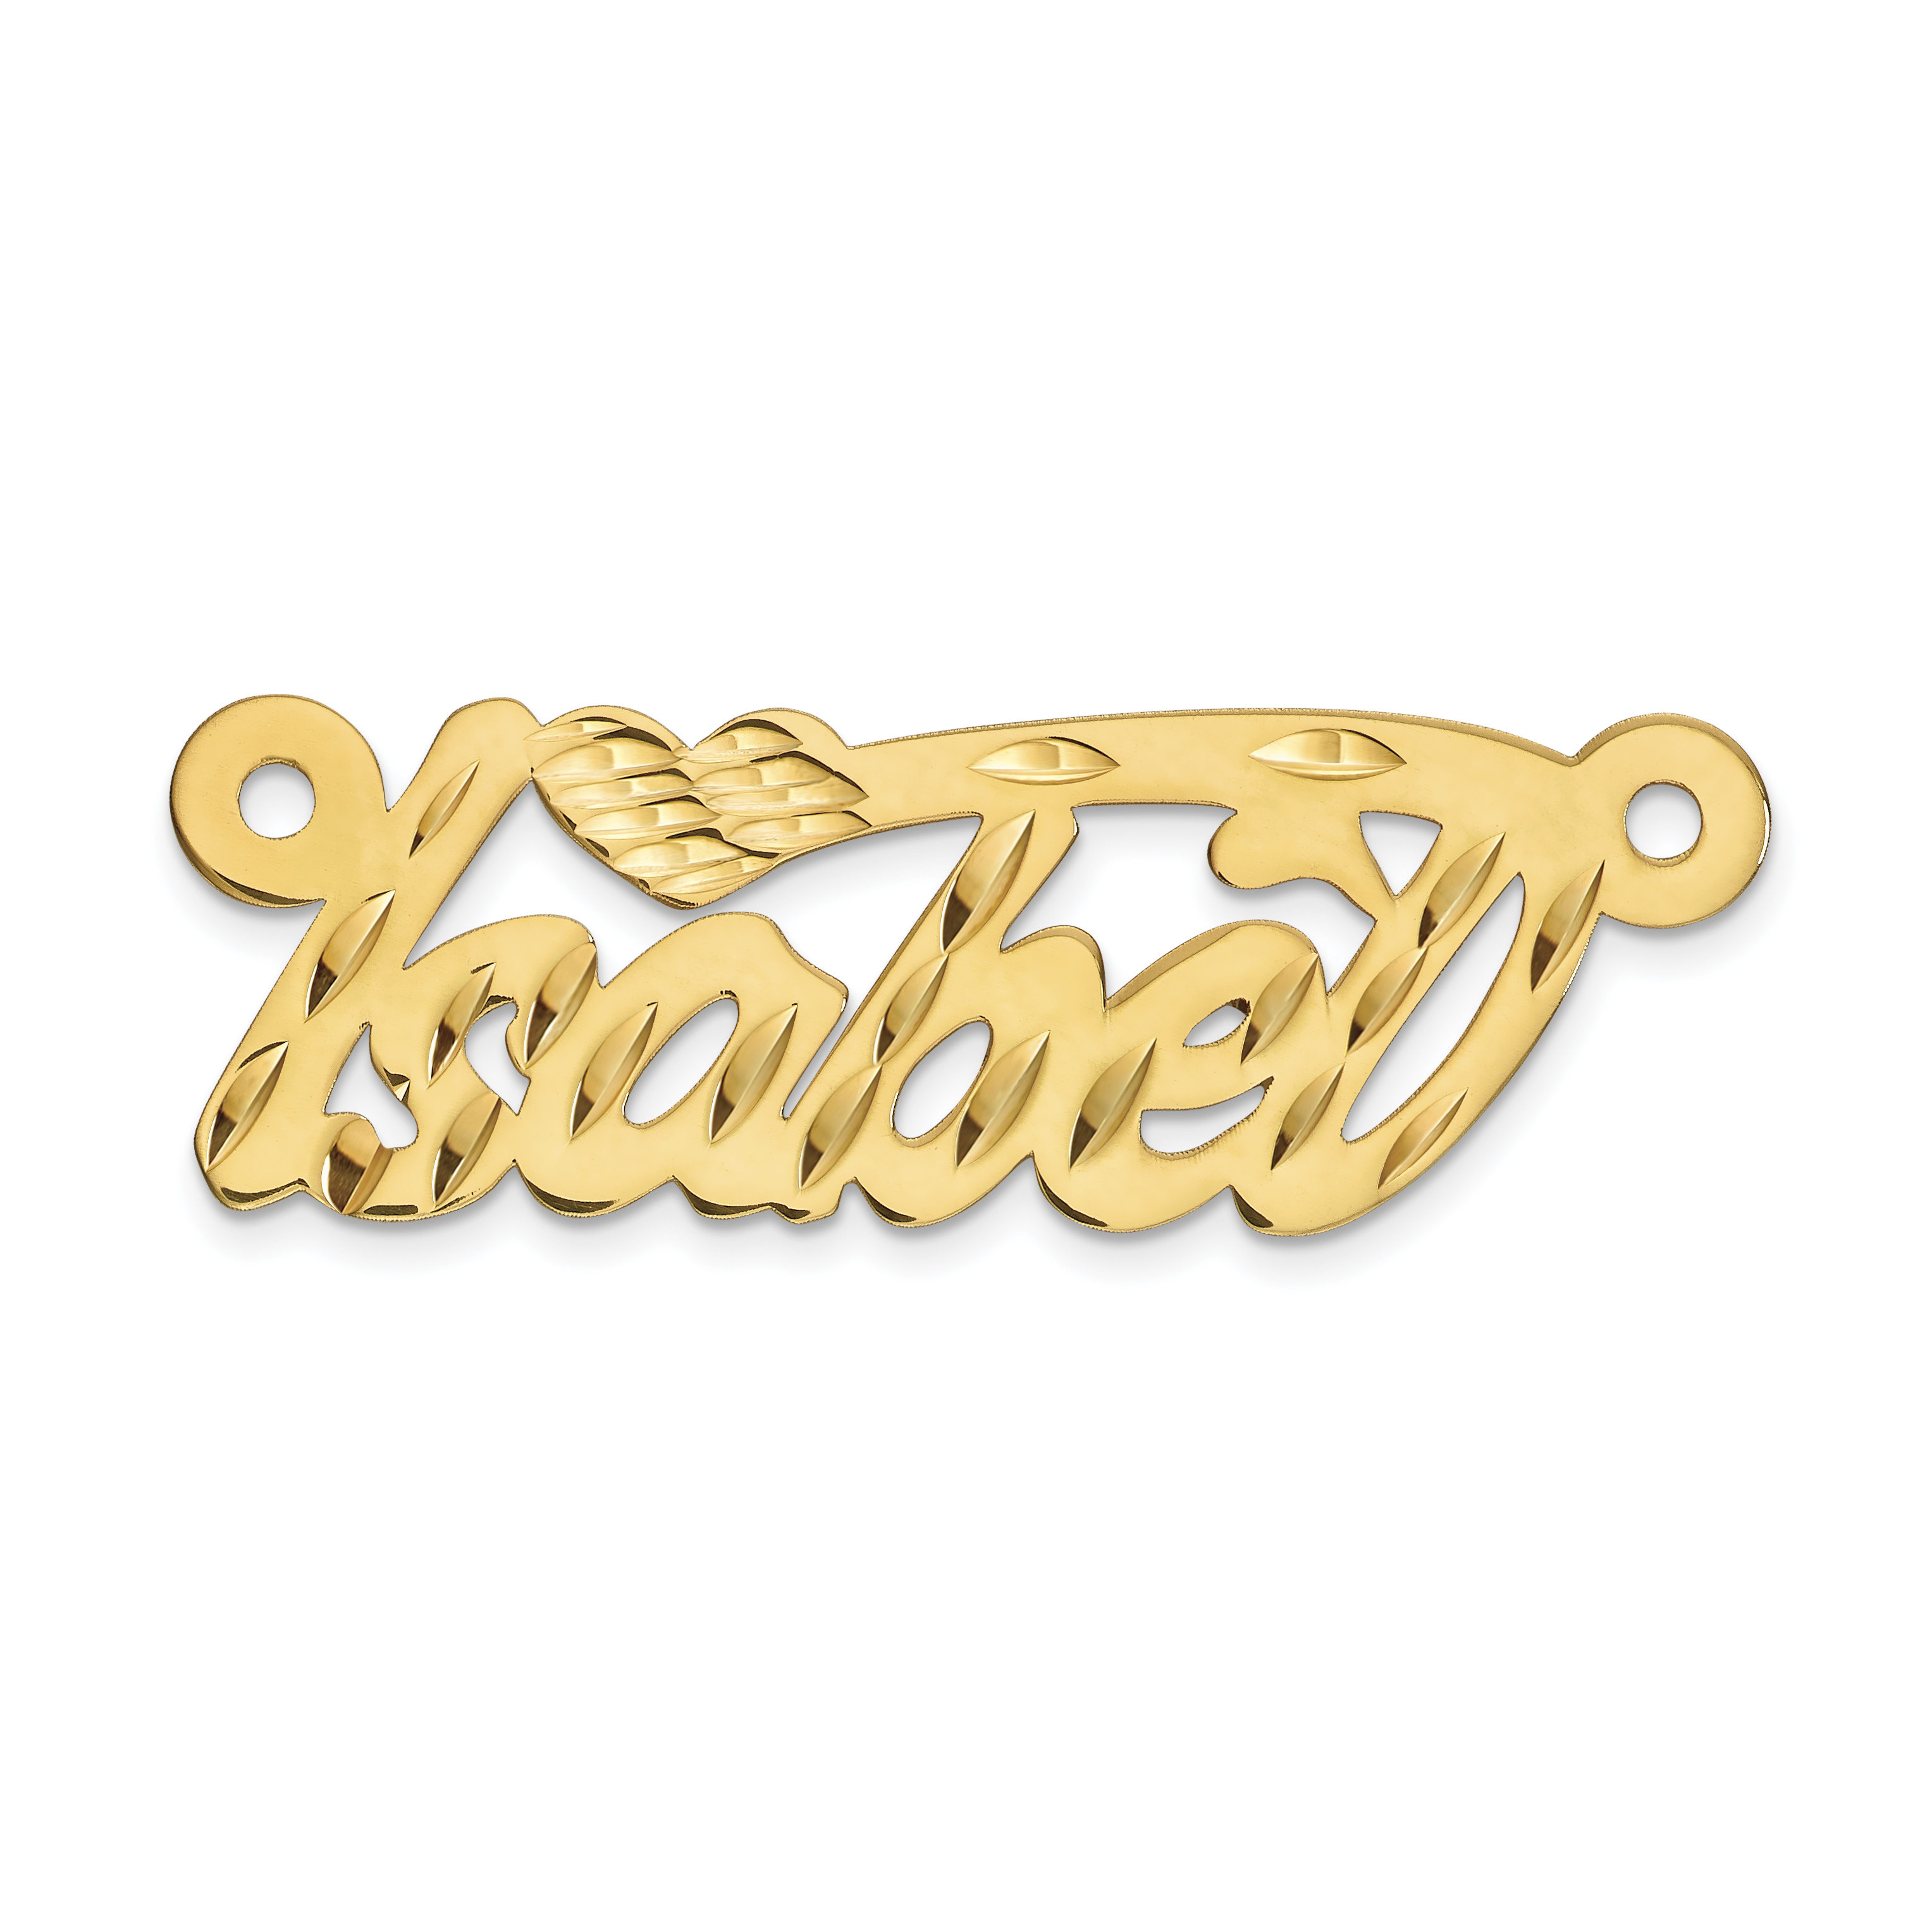 Jewel Tie 10k Yellow Gold .013 Gauge Polished Name Plate with Heart Pendant